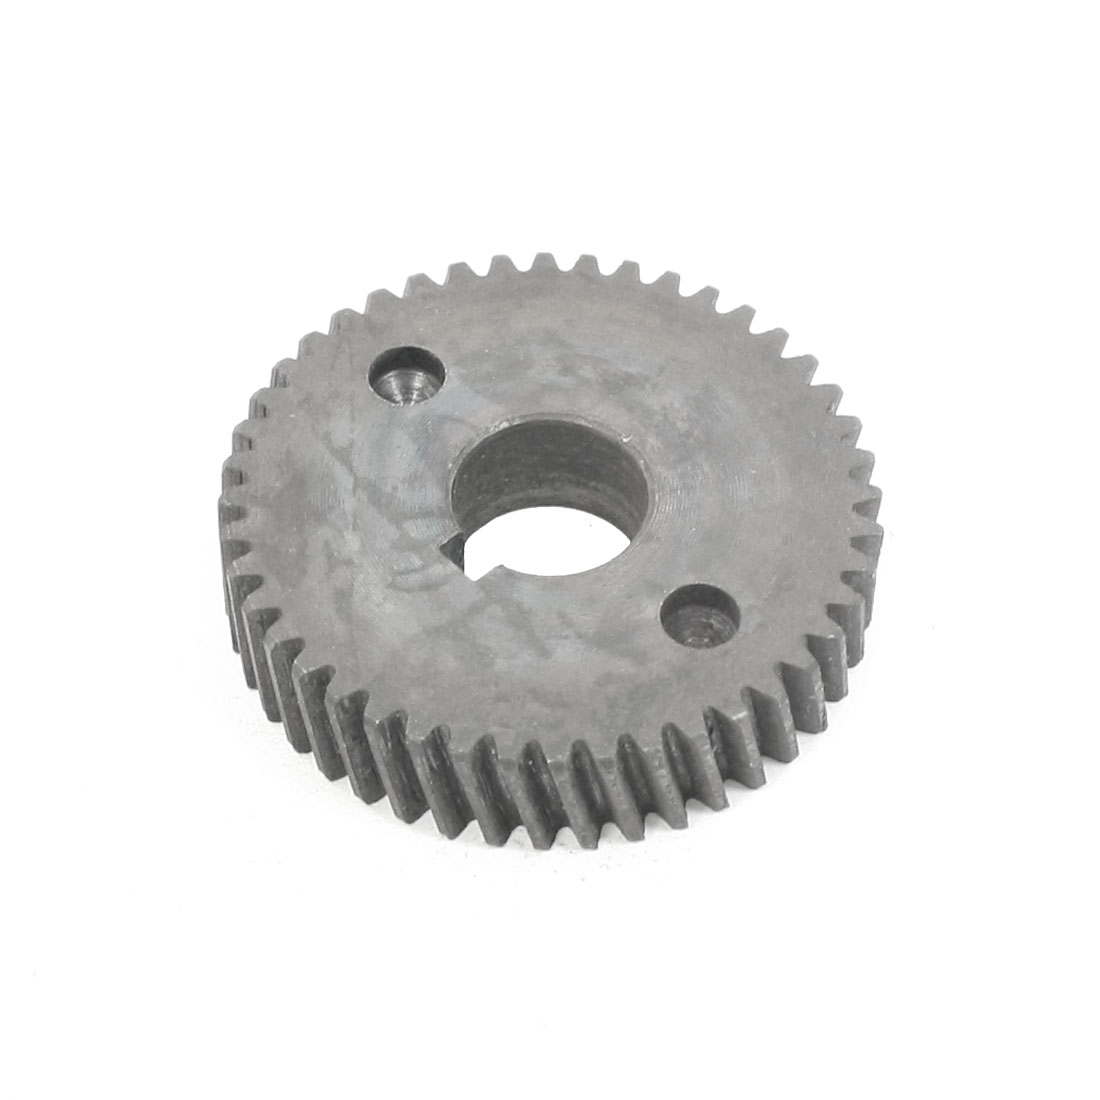 Electric Sander Replacement Part Helical Gear Wheel 58mm Diameter for Ryobi 350